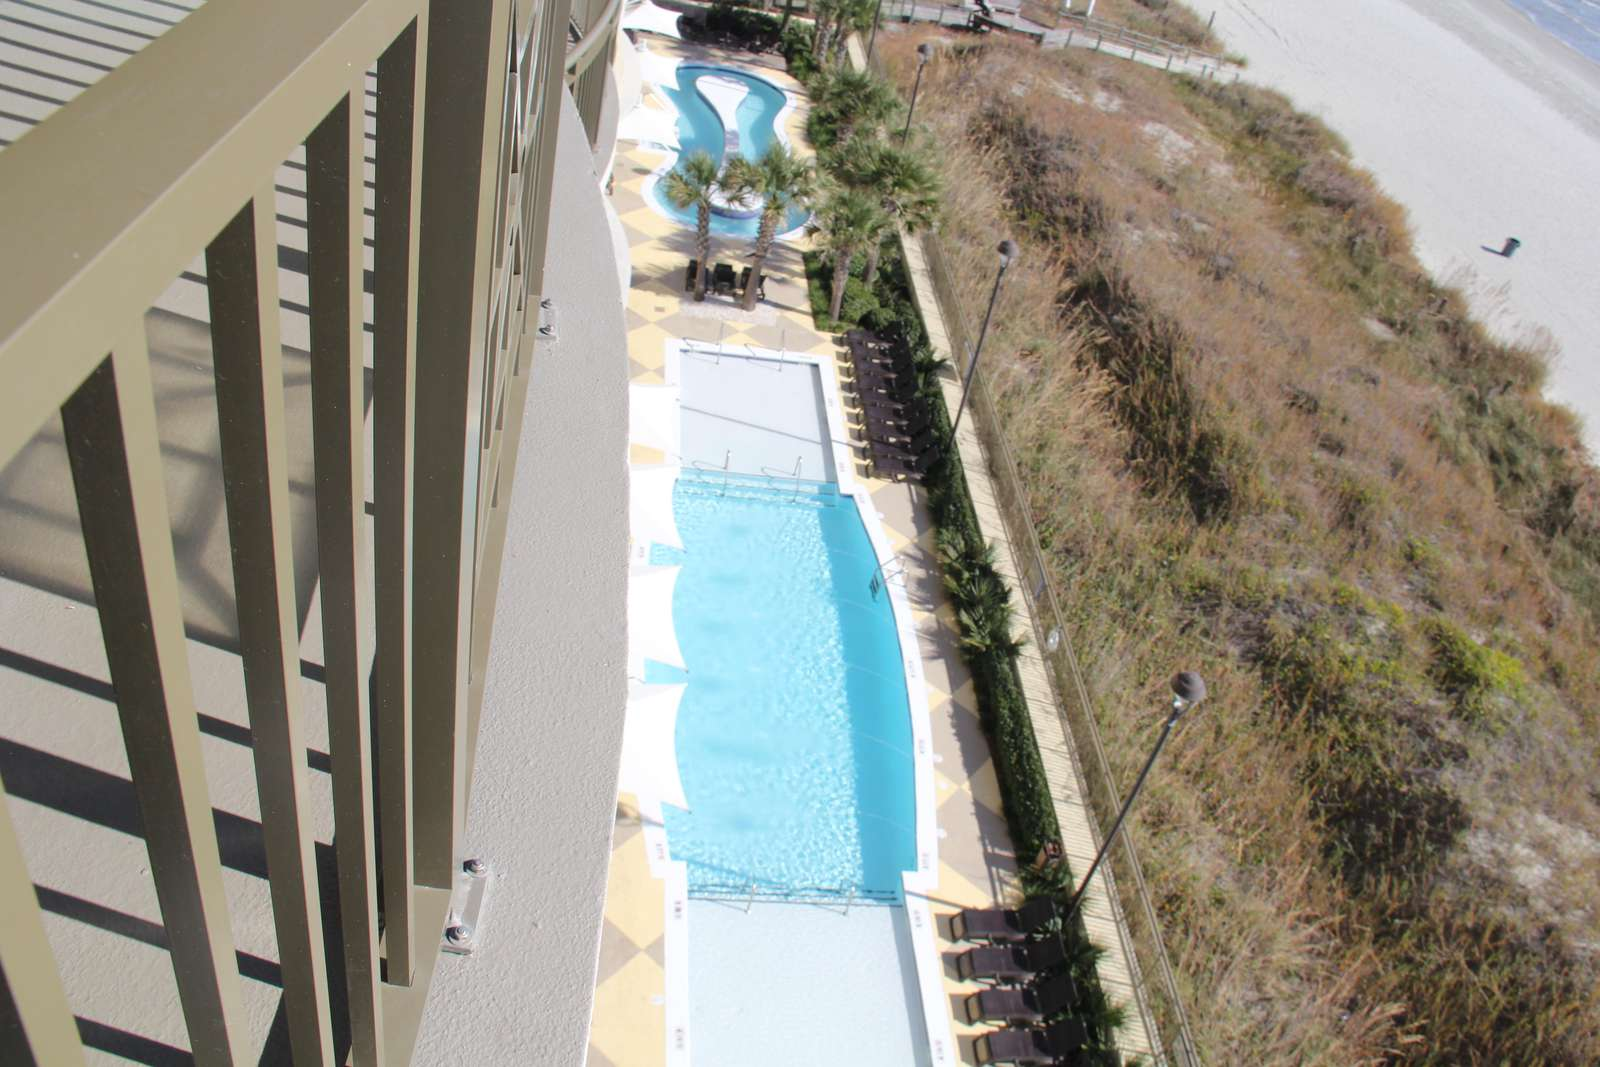 Pool Deck view from the balcony